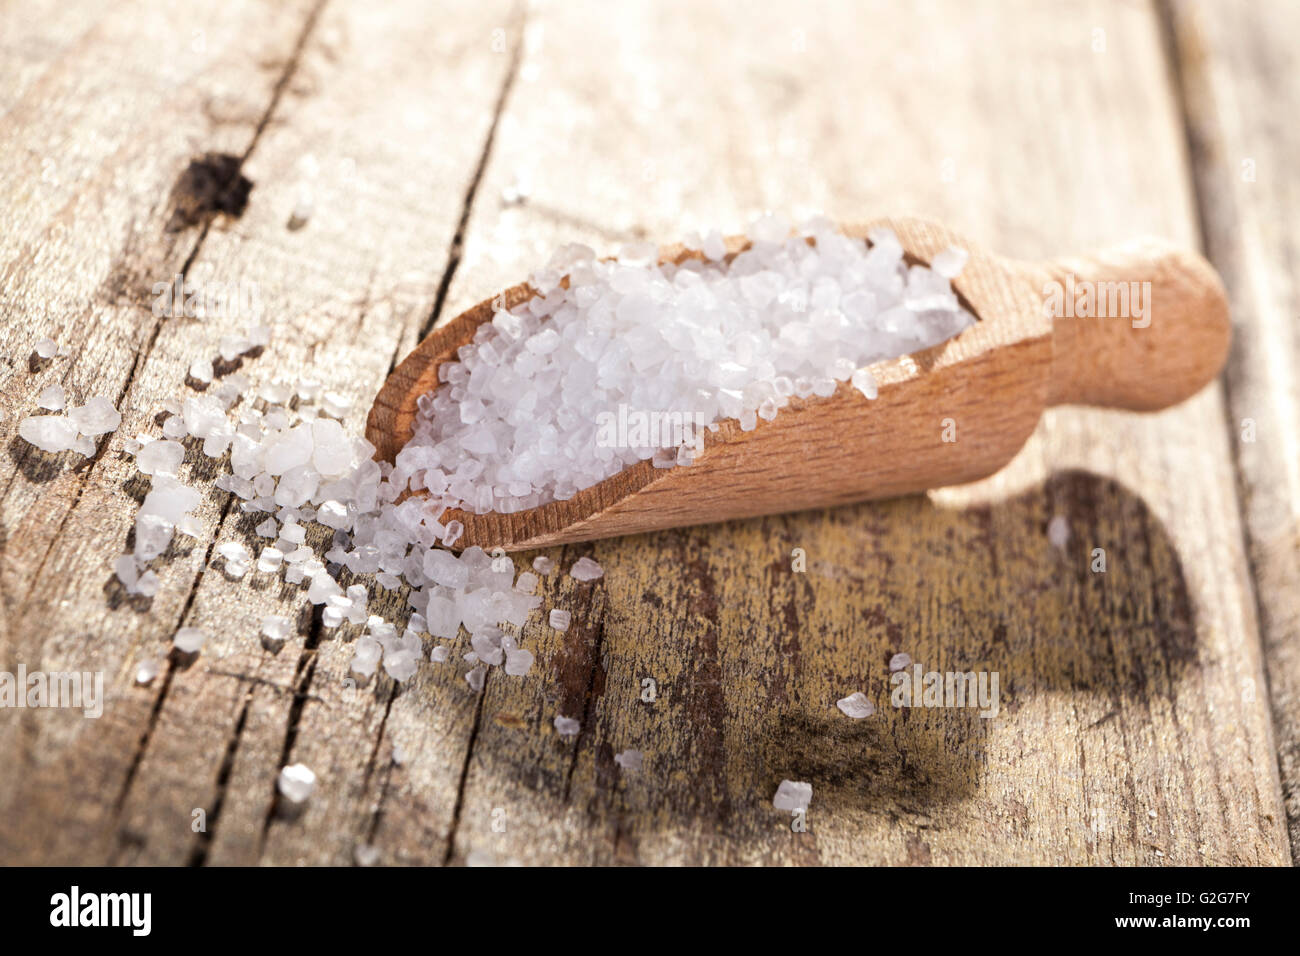 Old Brown wood spoon with salt cristals on wood table - Stock Image